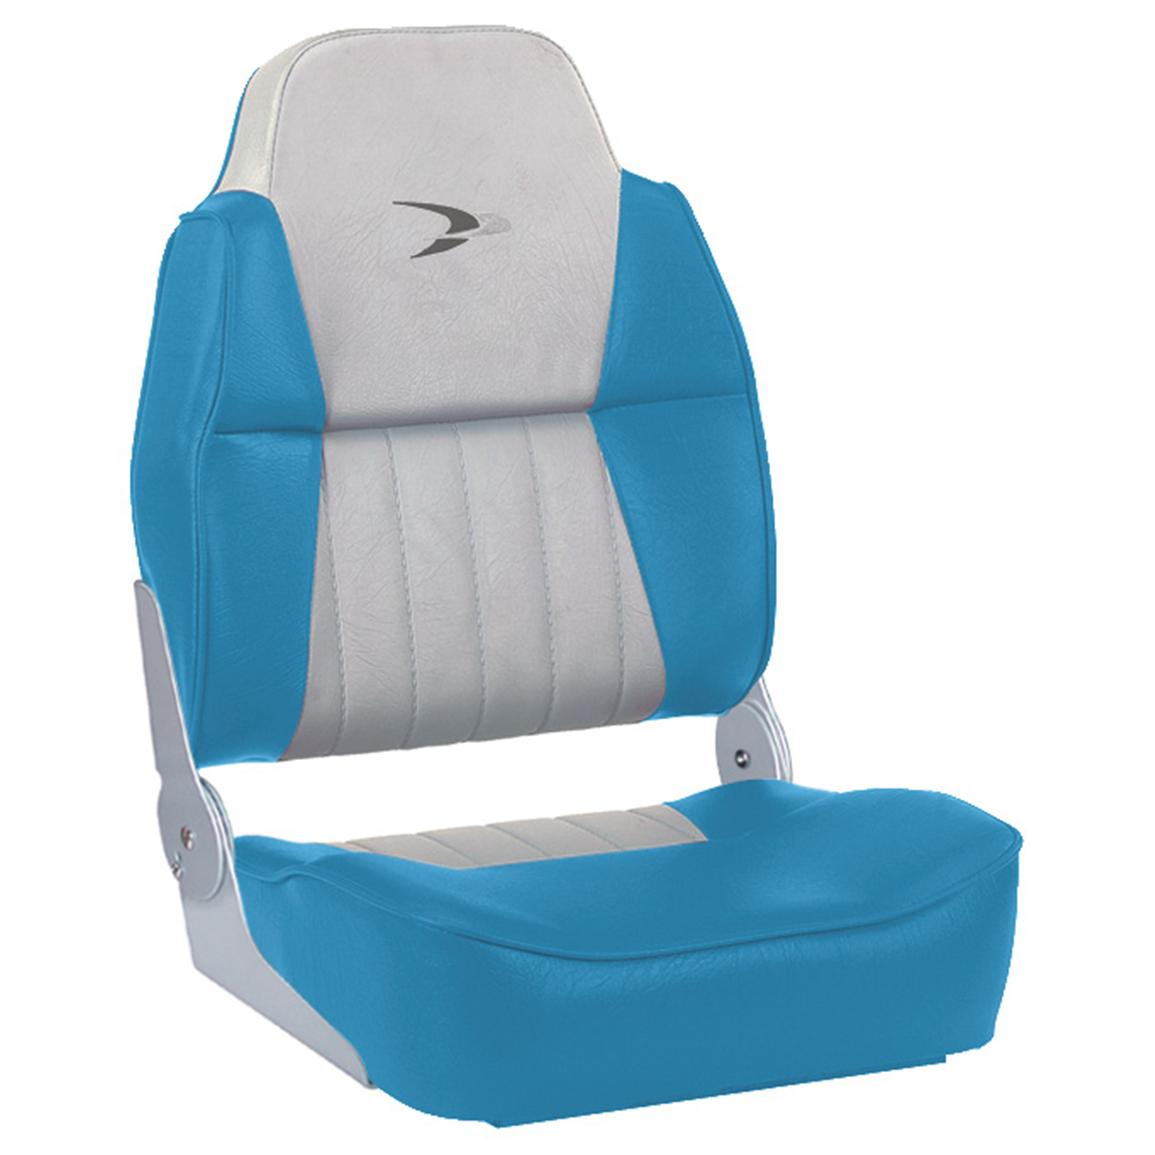 Wise® Embroidered Logo Hi-back Fishing Boat Seat, Light Blue / White